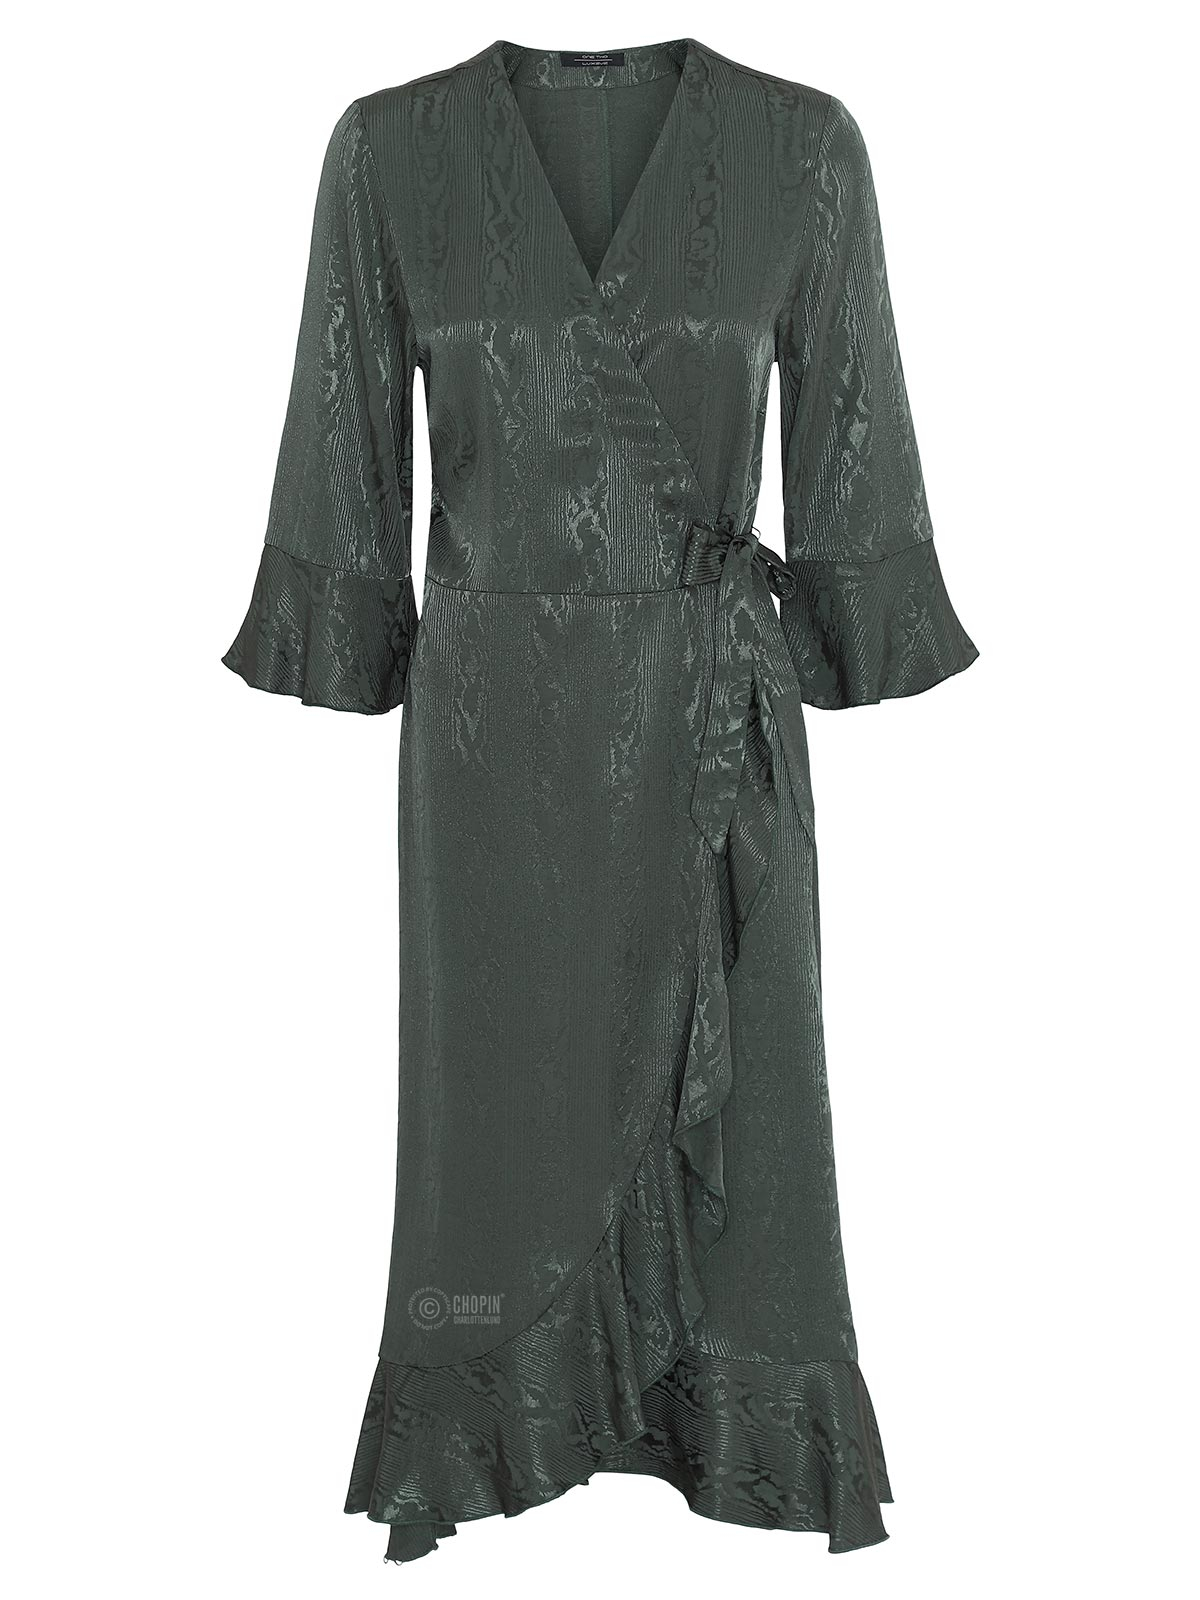 5a0aac74dadd One Two Luxzuz Fenja wrap dress Dark jungle - kjole 4532-1578 » CHOPIN®